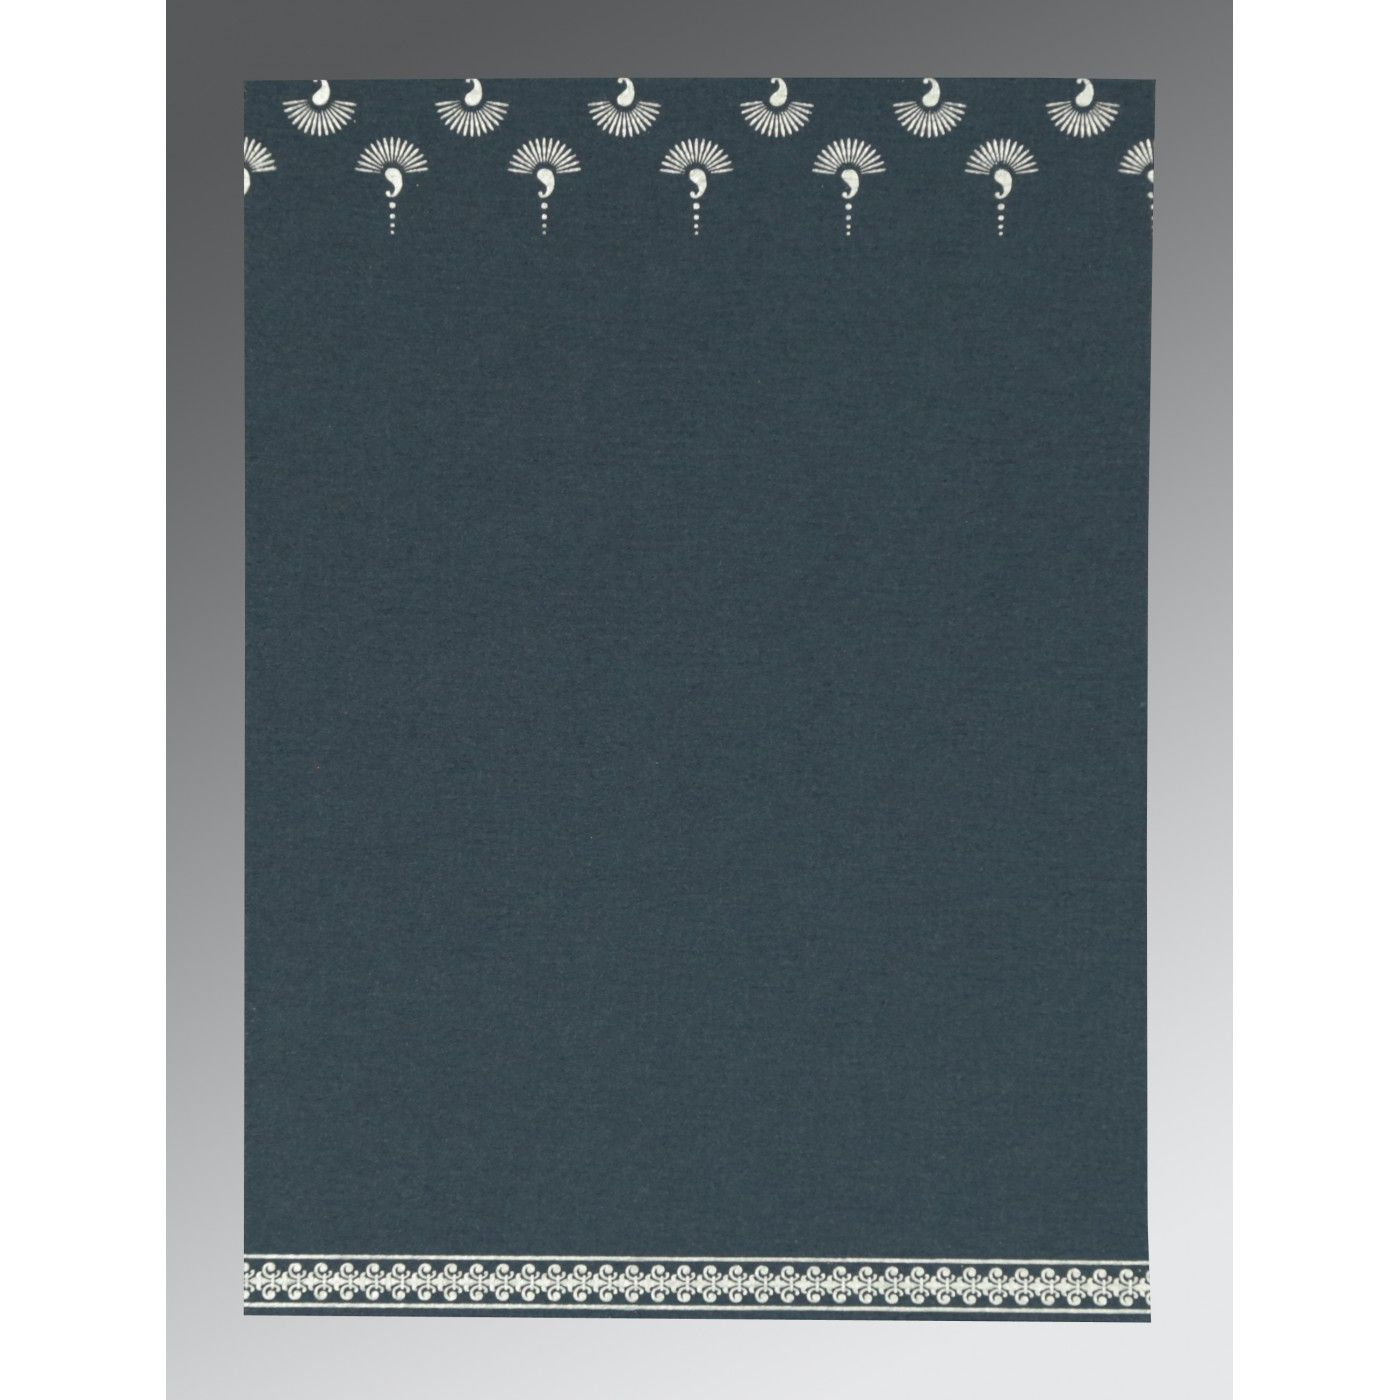 GRAYISH BLUE MATTE SCREEN PRINTED WEDDING INVITATION : CG-8247G - IndianWeddingCards